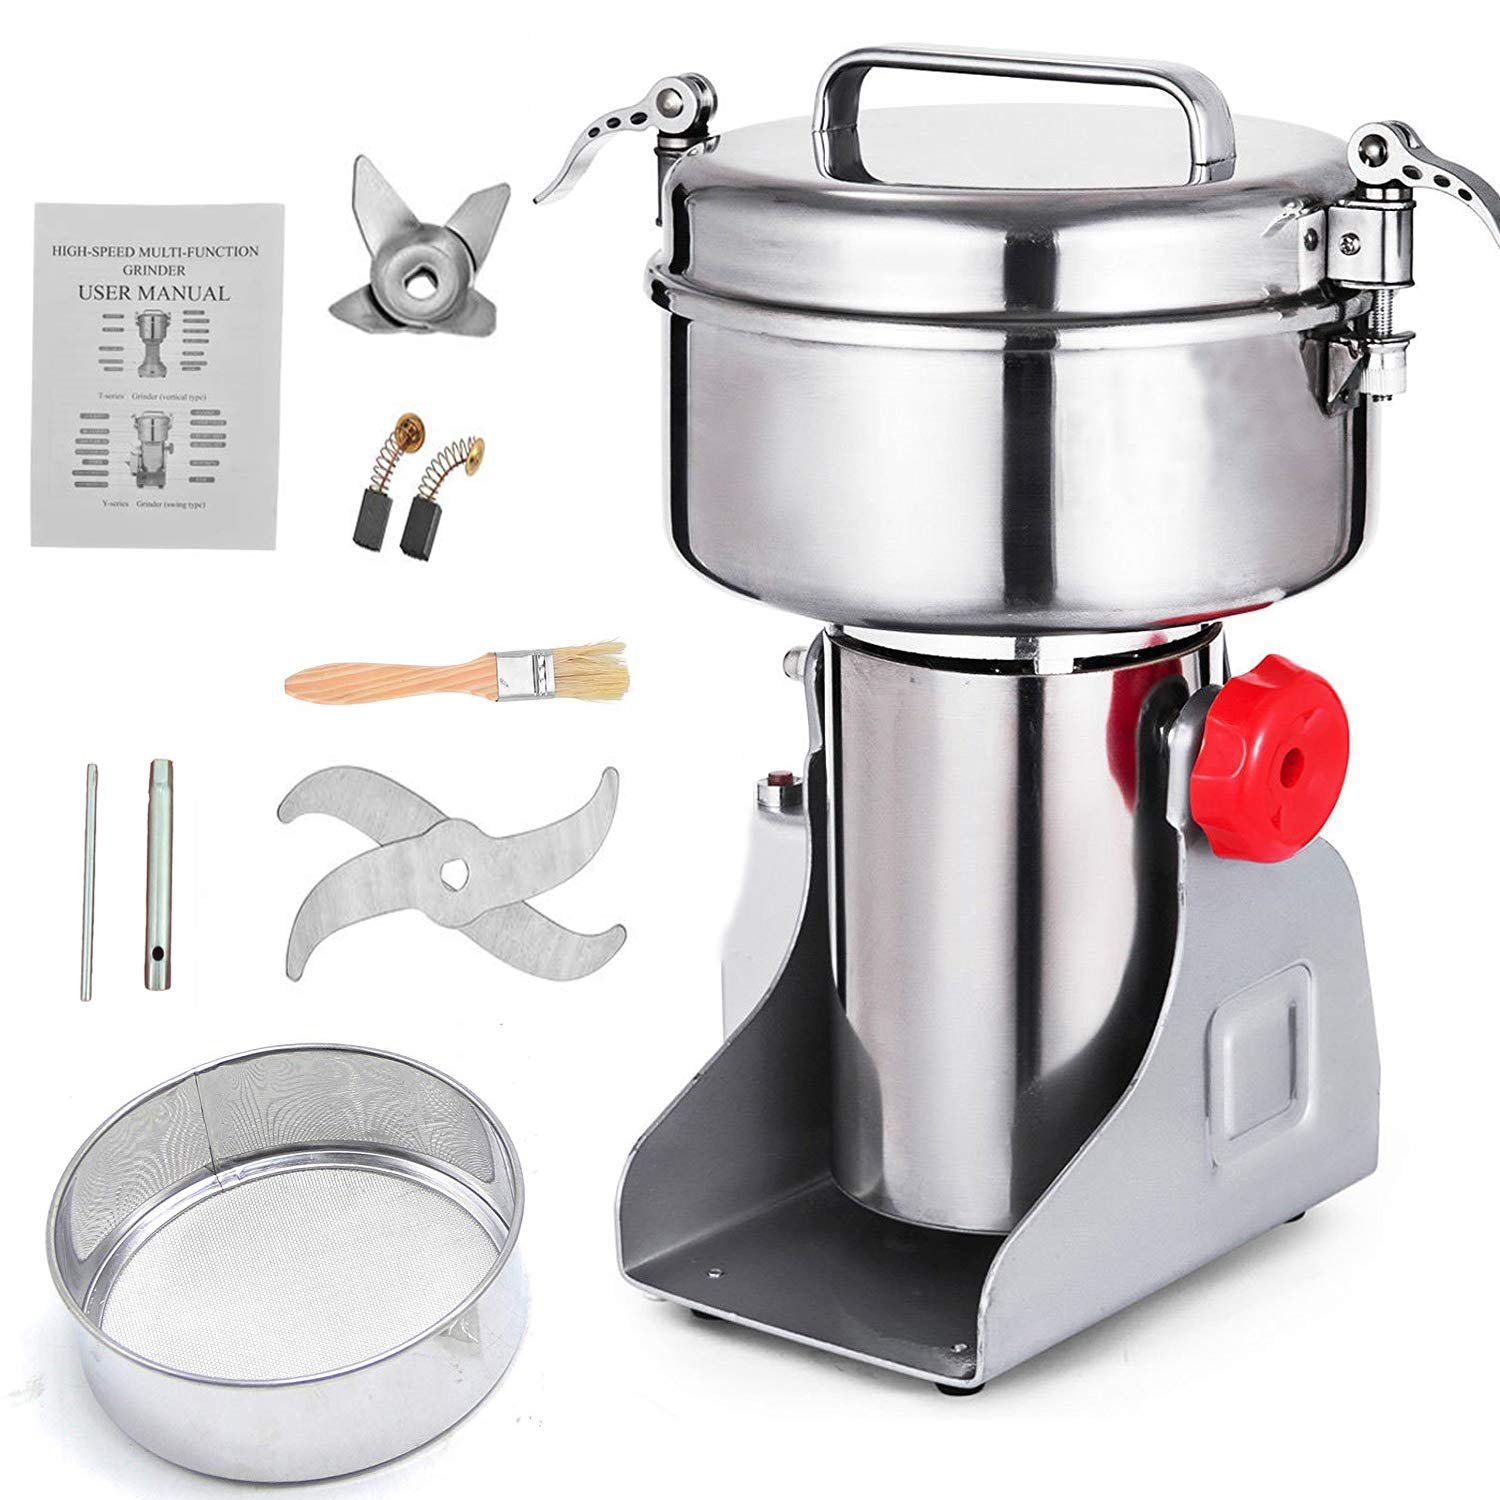 Electric Grain Mill Grinder 710g(1.5lb) Grain Capacity 110V Swing Type High Speed and High Power Herb Grain Spice Grinder Cereal Salt Pepper Coffee Grinder Flour Powder Machine by Speder